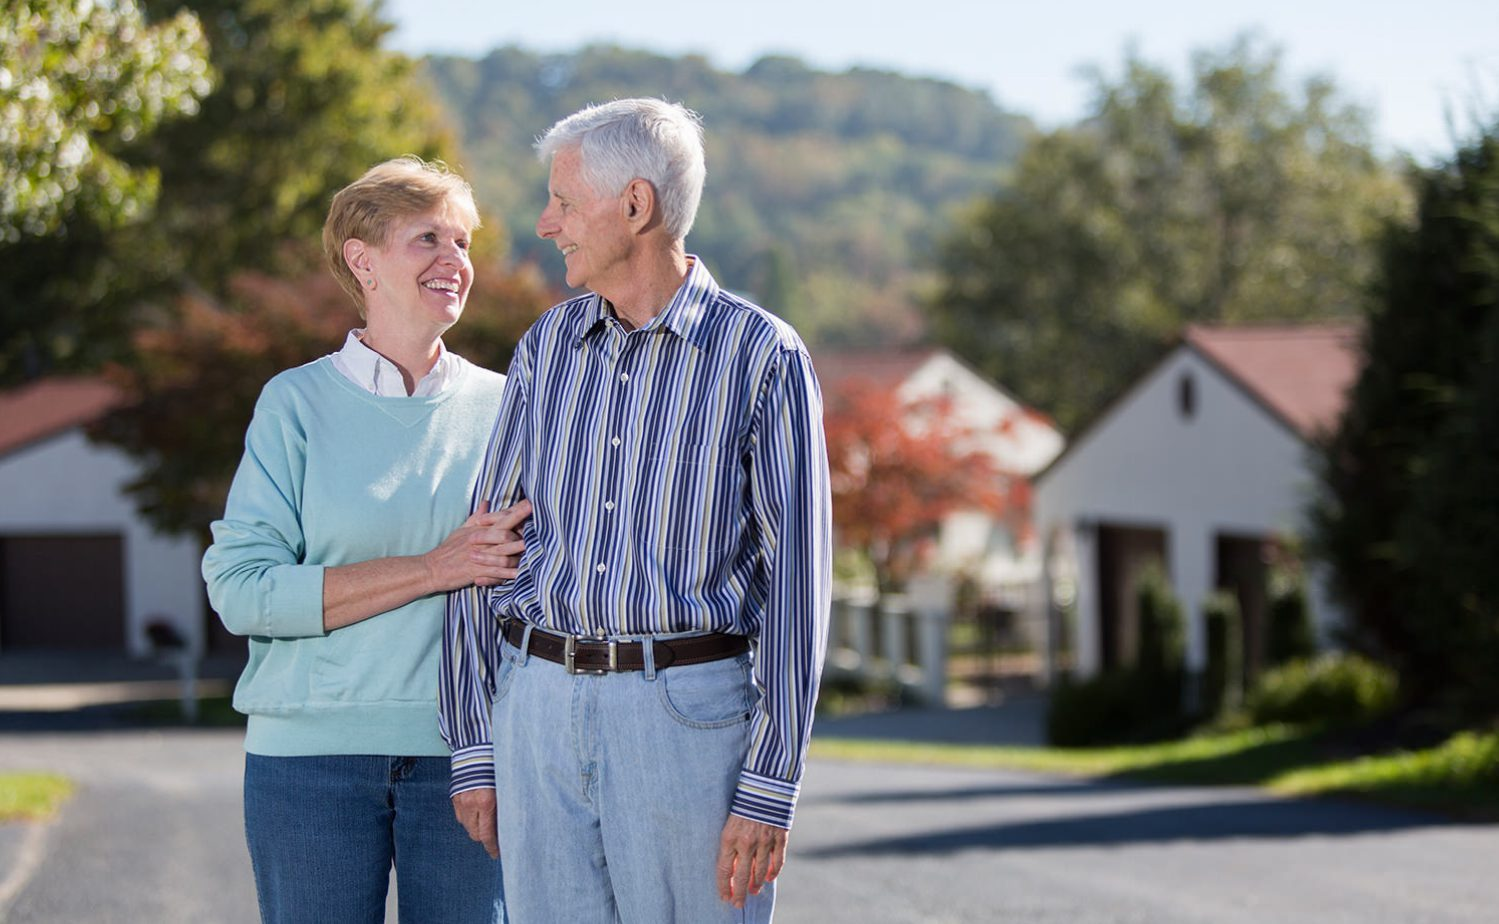 couple-retirement-lifestyle-laughing